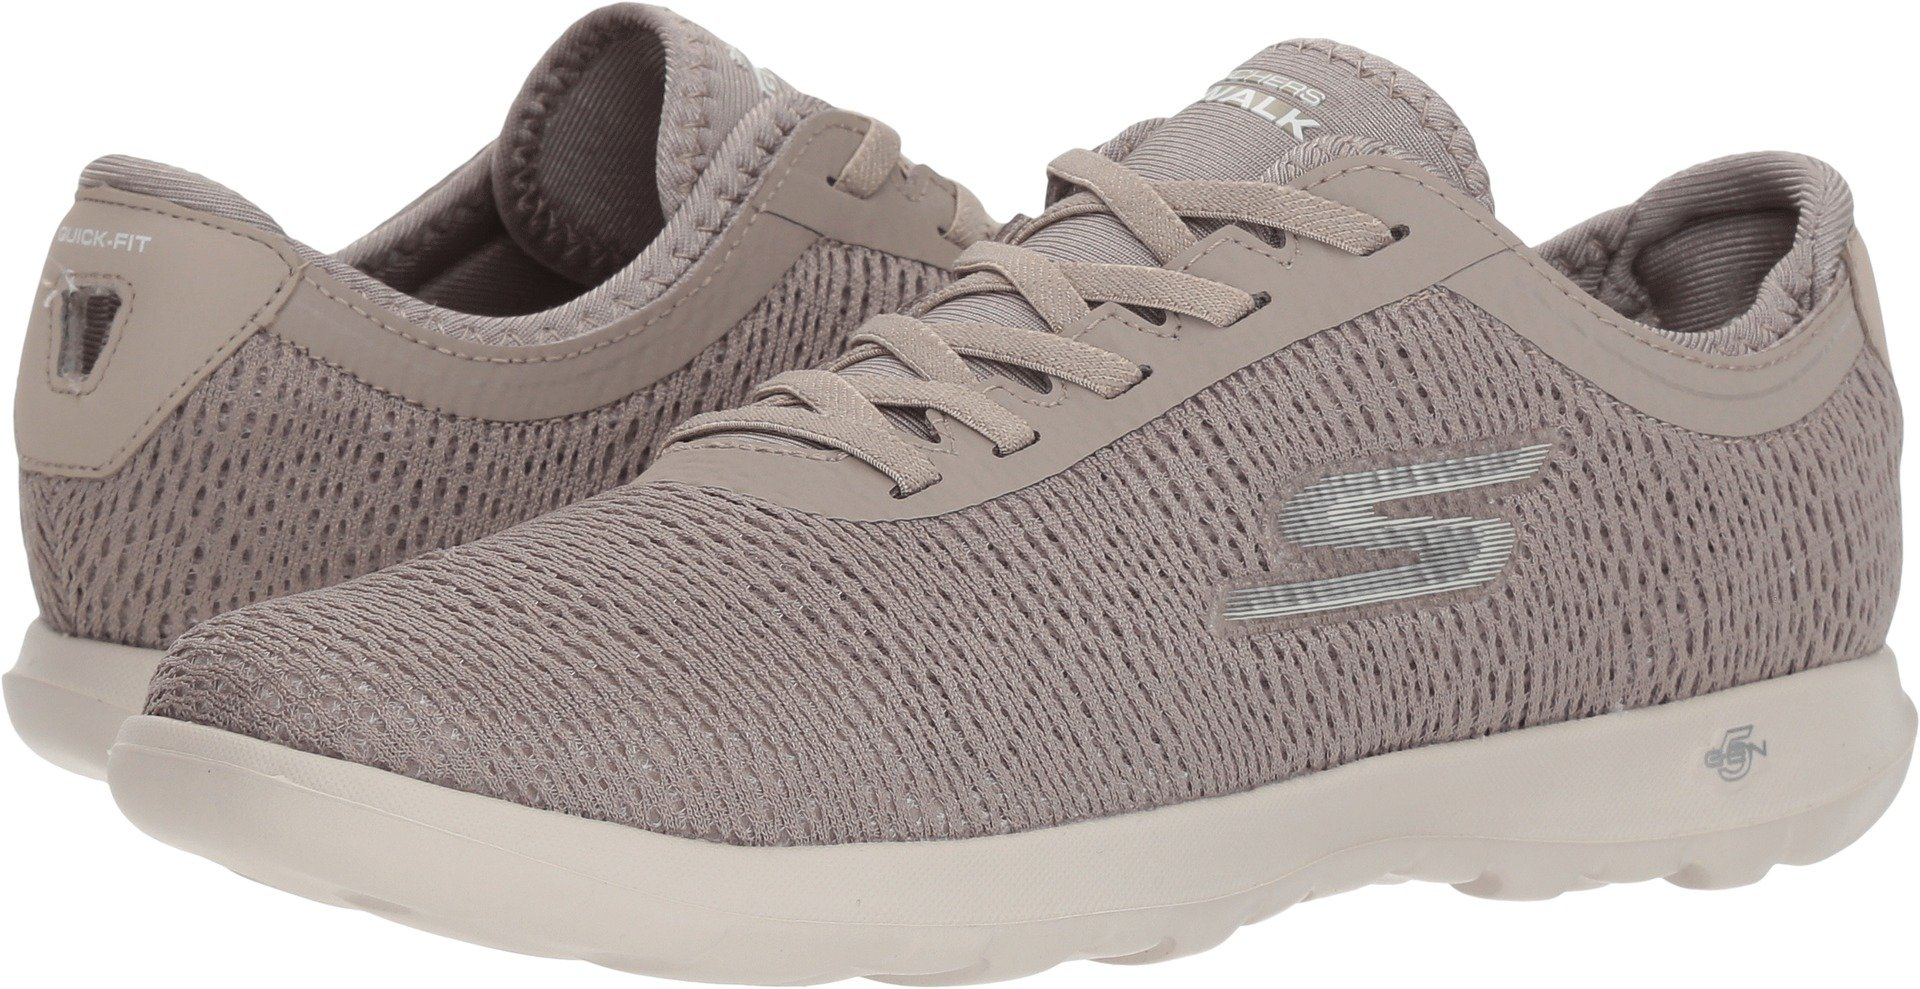 Skechers GOwalk Lite - Savvy Taupe Womens Sneakers Size 8M